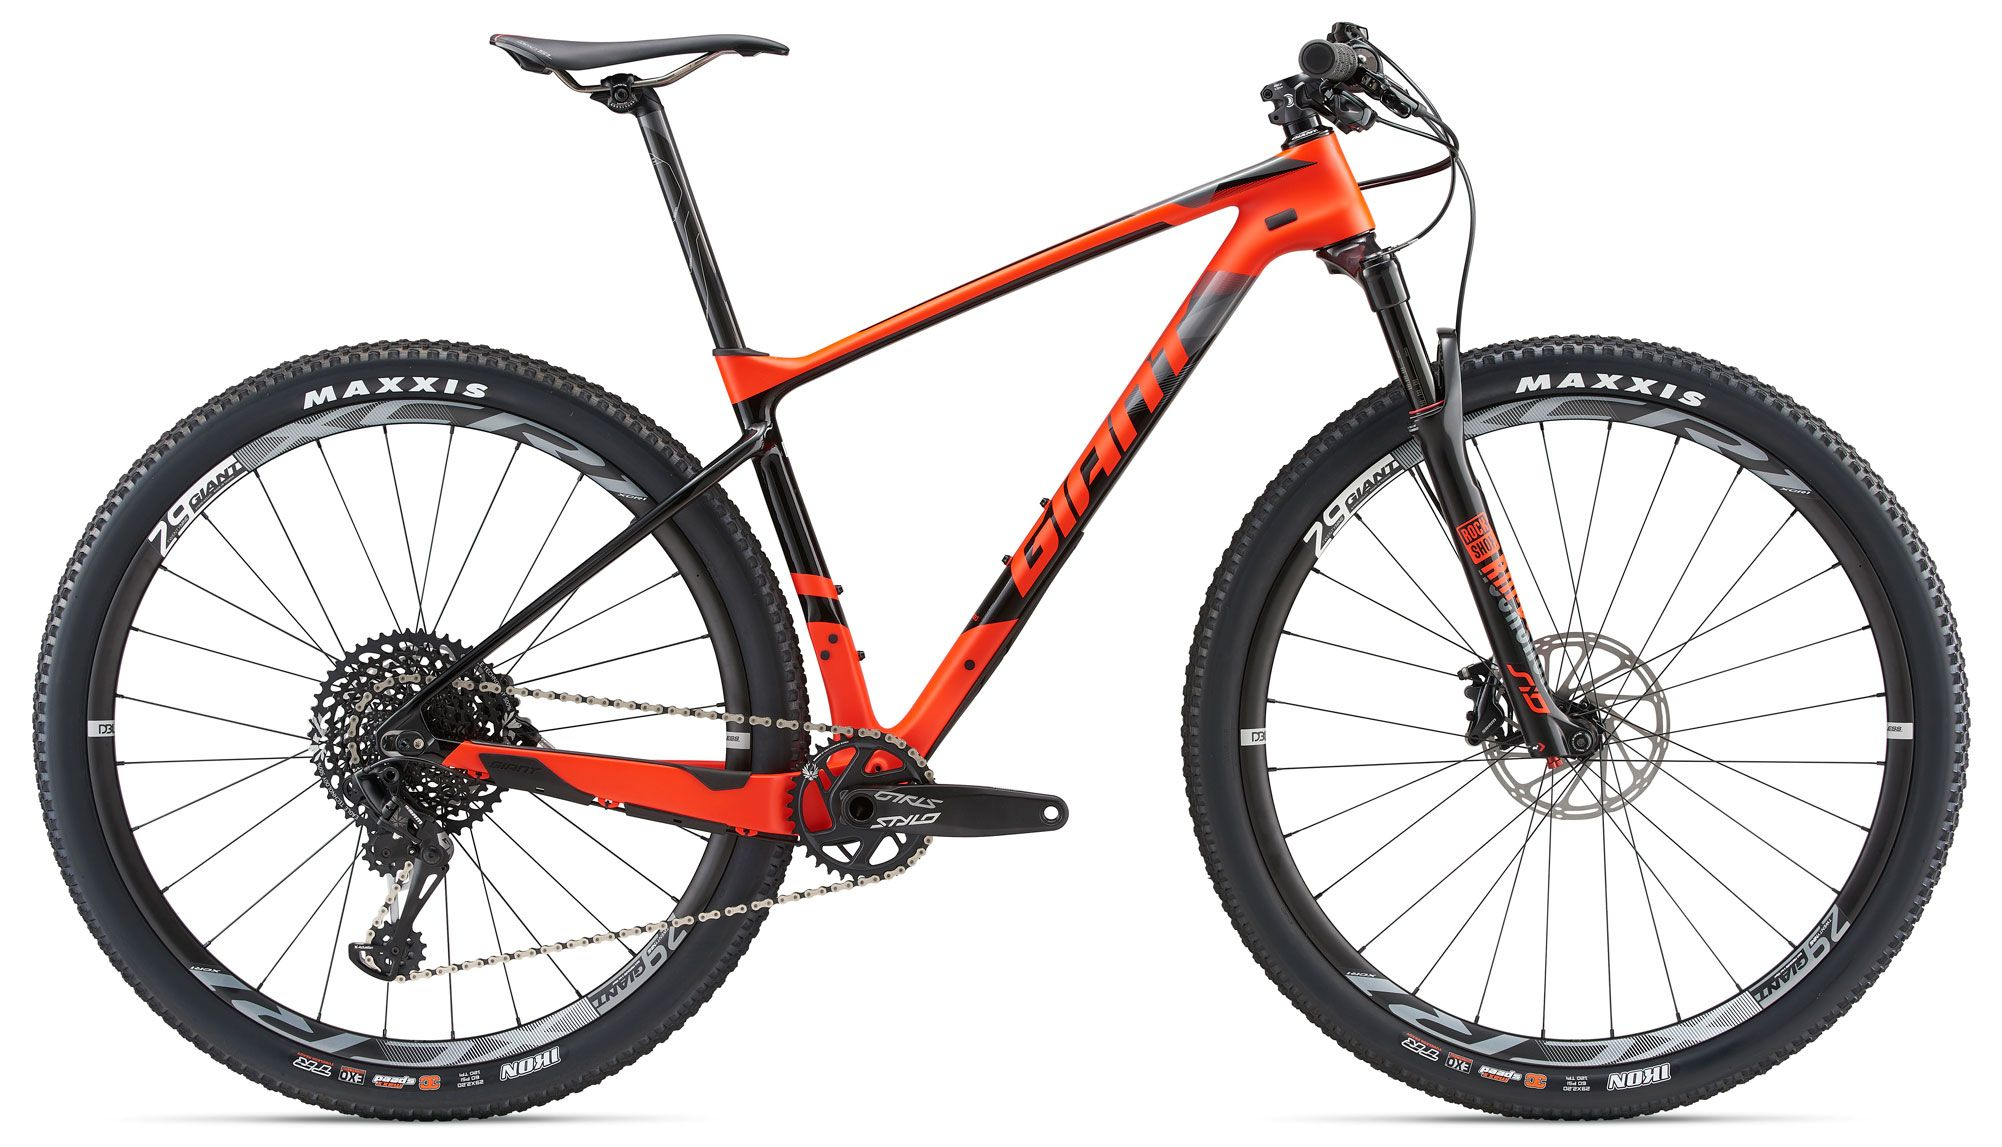 Велосипед Giant XTC Advanced 29er 1 2018 велосипед giant xtc advanced 27 5 2 2014